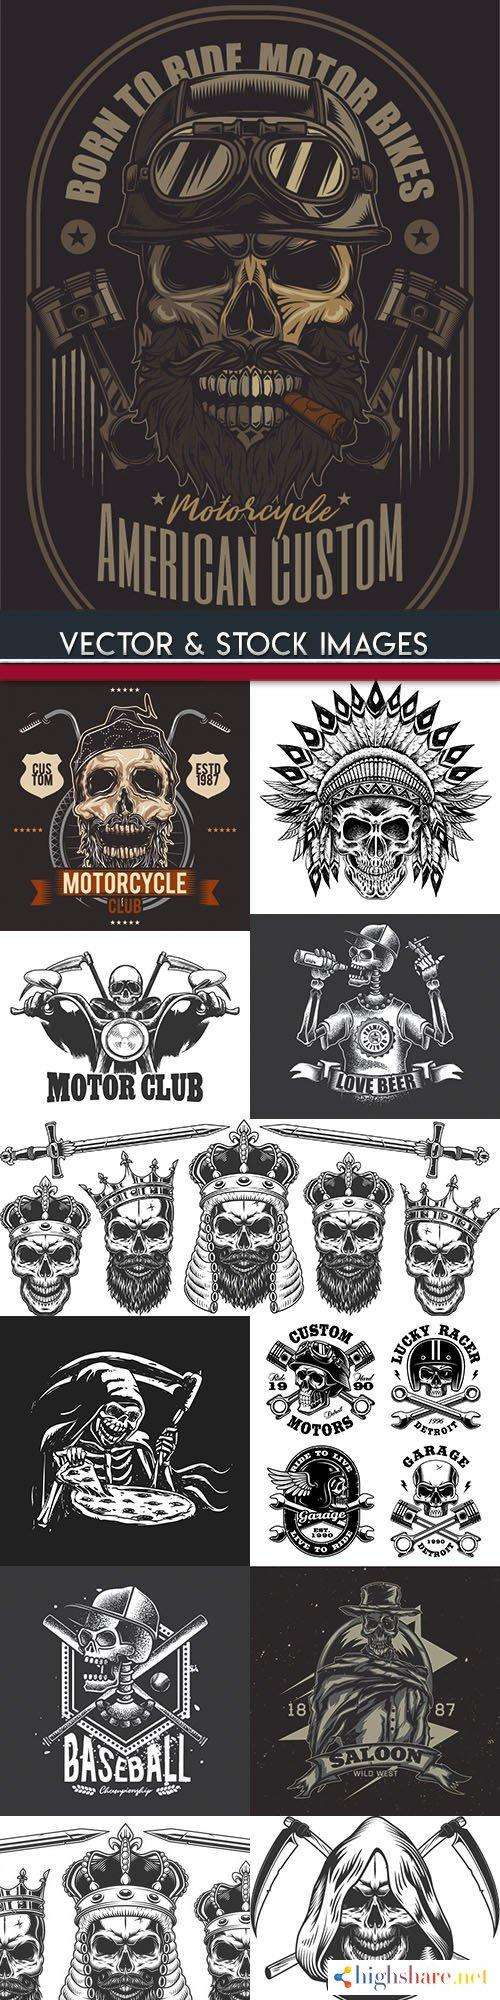 grunge skull and motorcycle design template 2 5f427140387d4 - Grunge skull and motorcycle design template 2